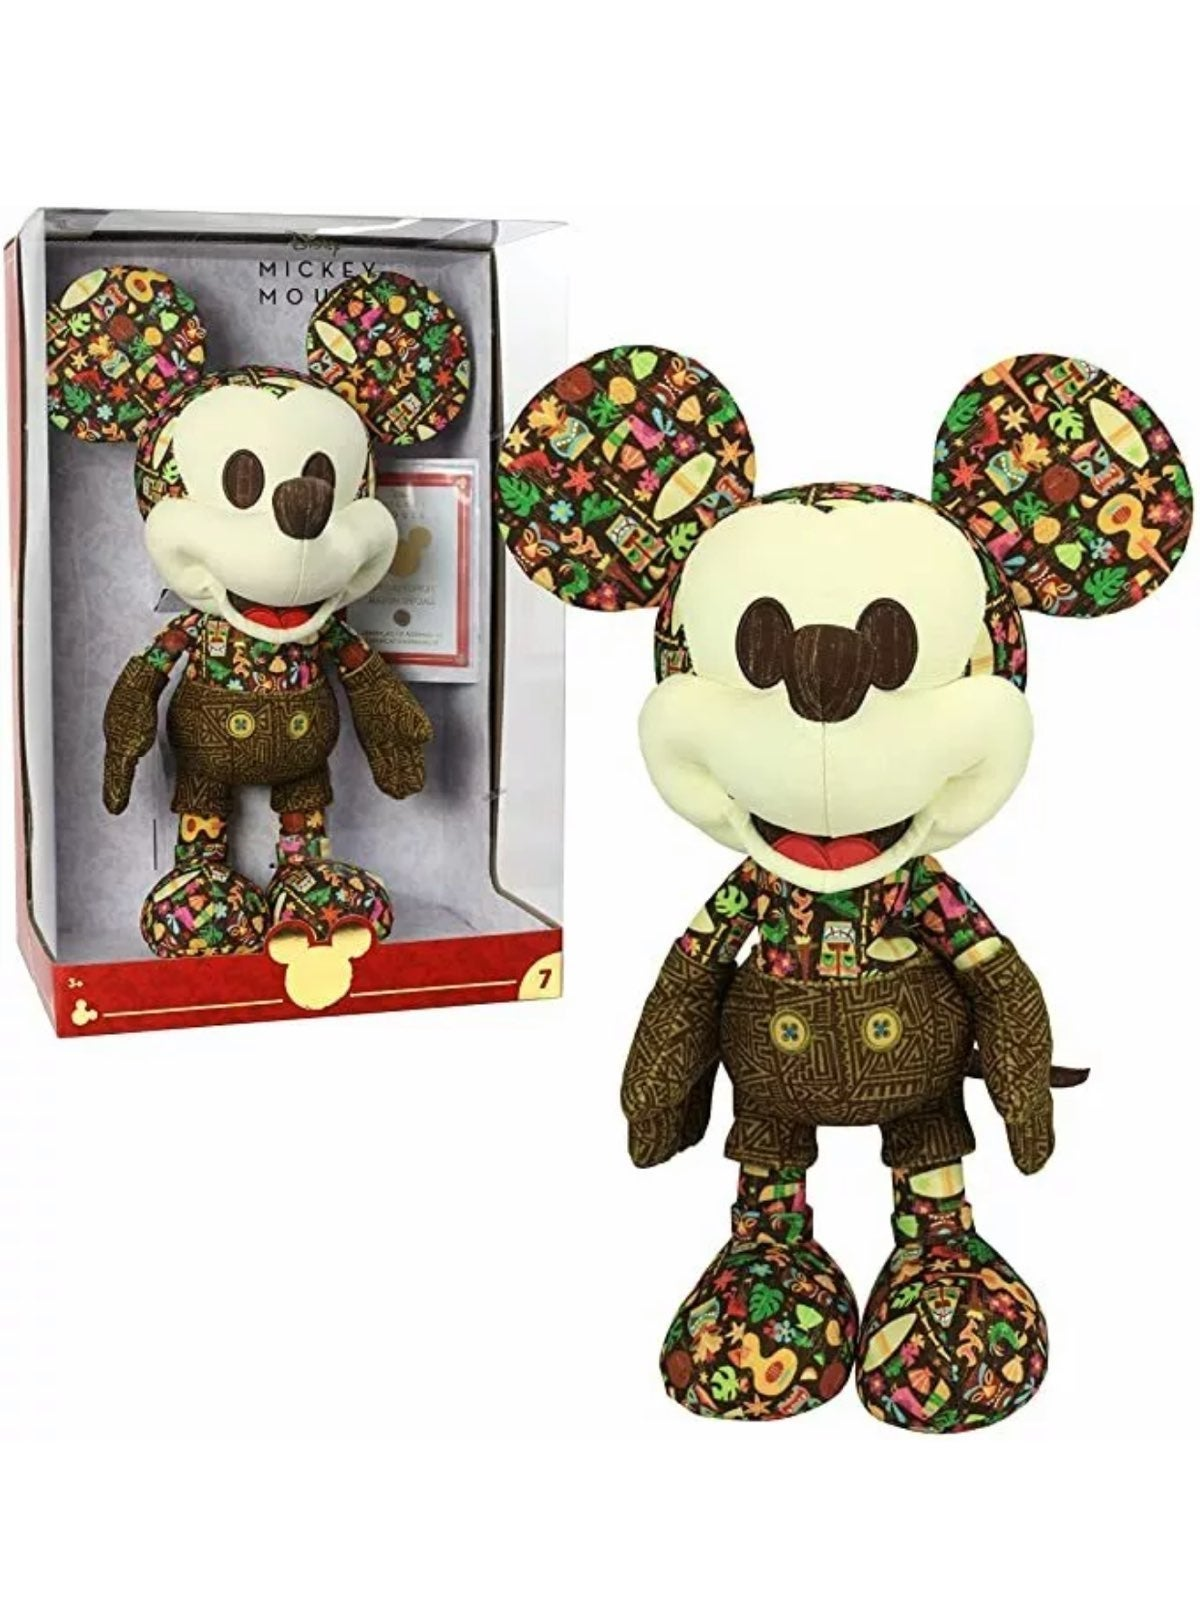 Year of the Mouse Mickey Mouse Plush 7